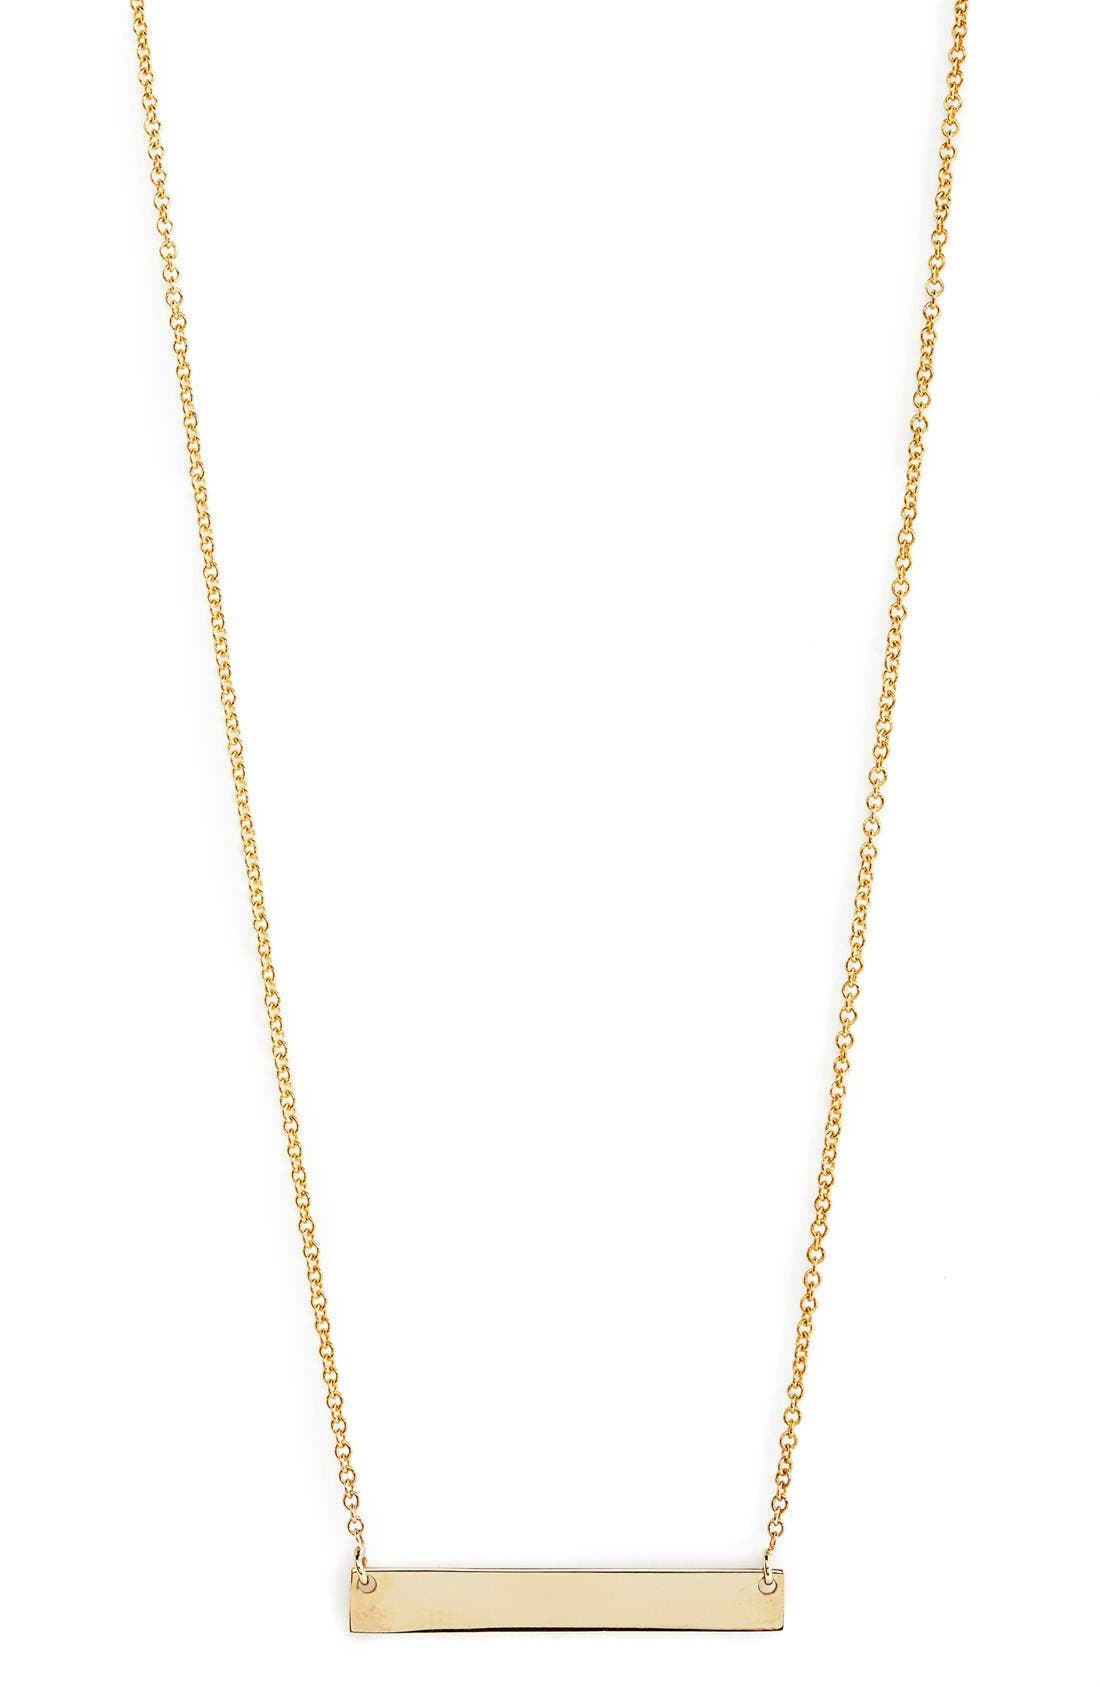 Main Image - Bony Levy 14k Gold Bar Pendant Necklace (Nordstrom Exclusive)